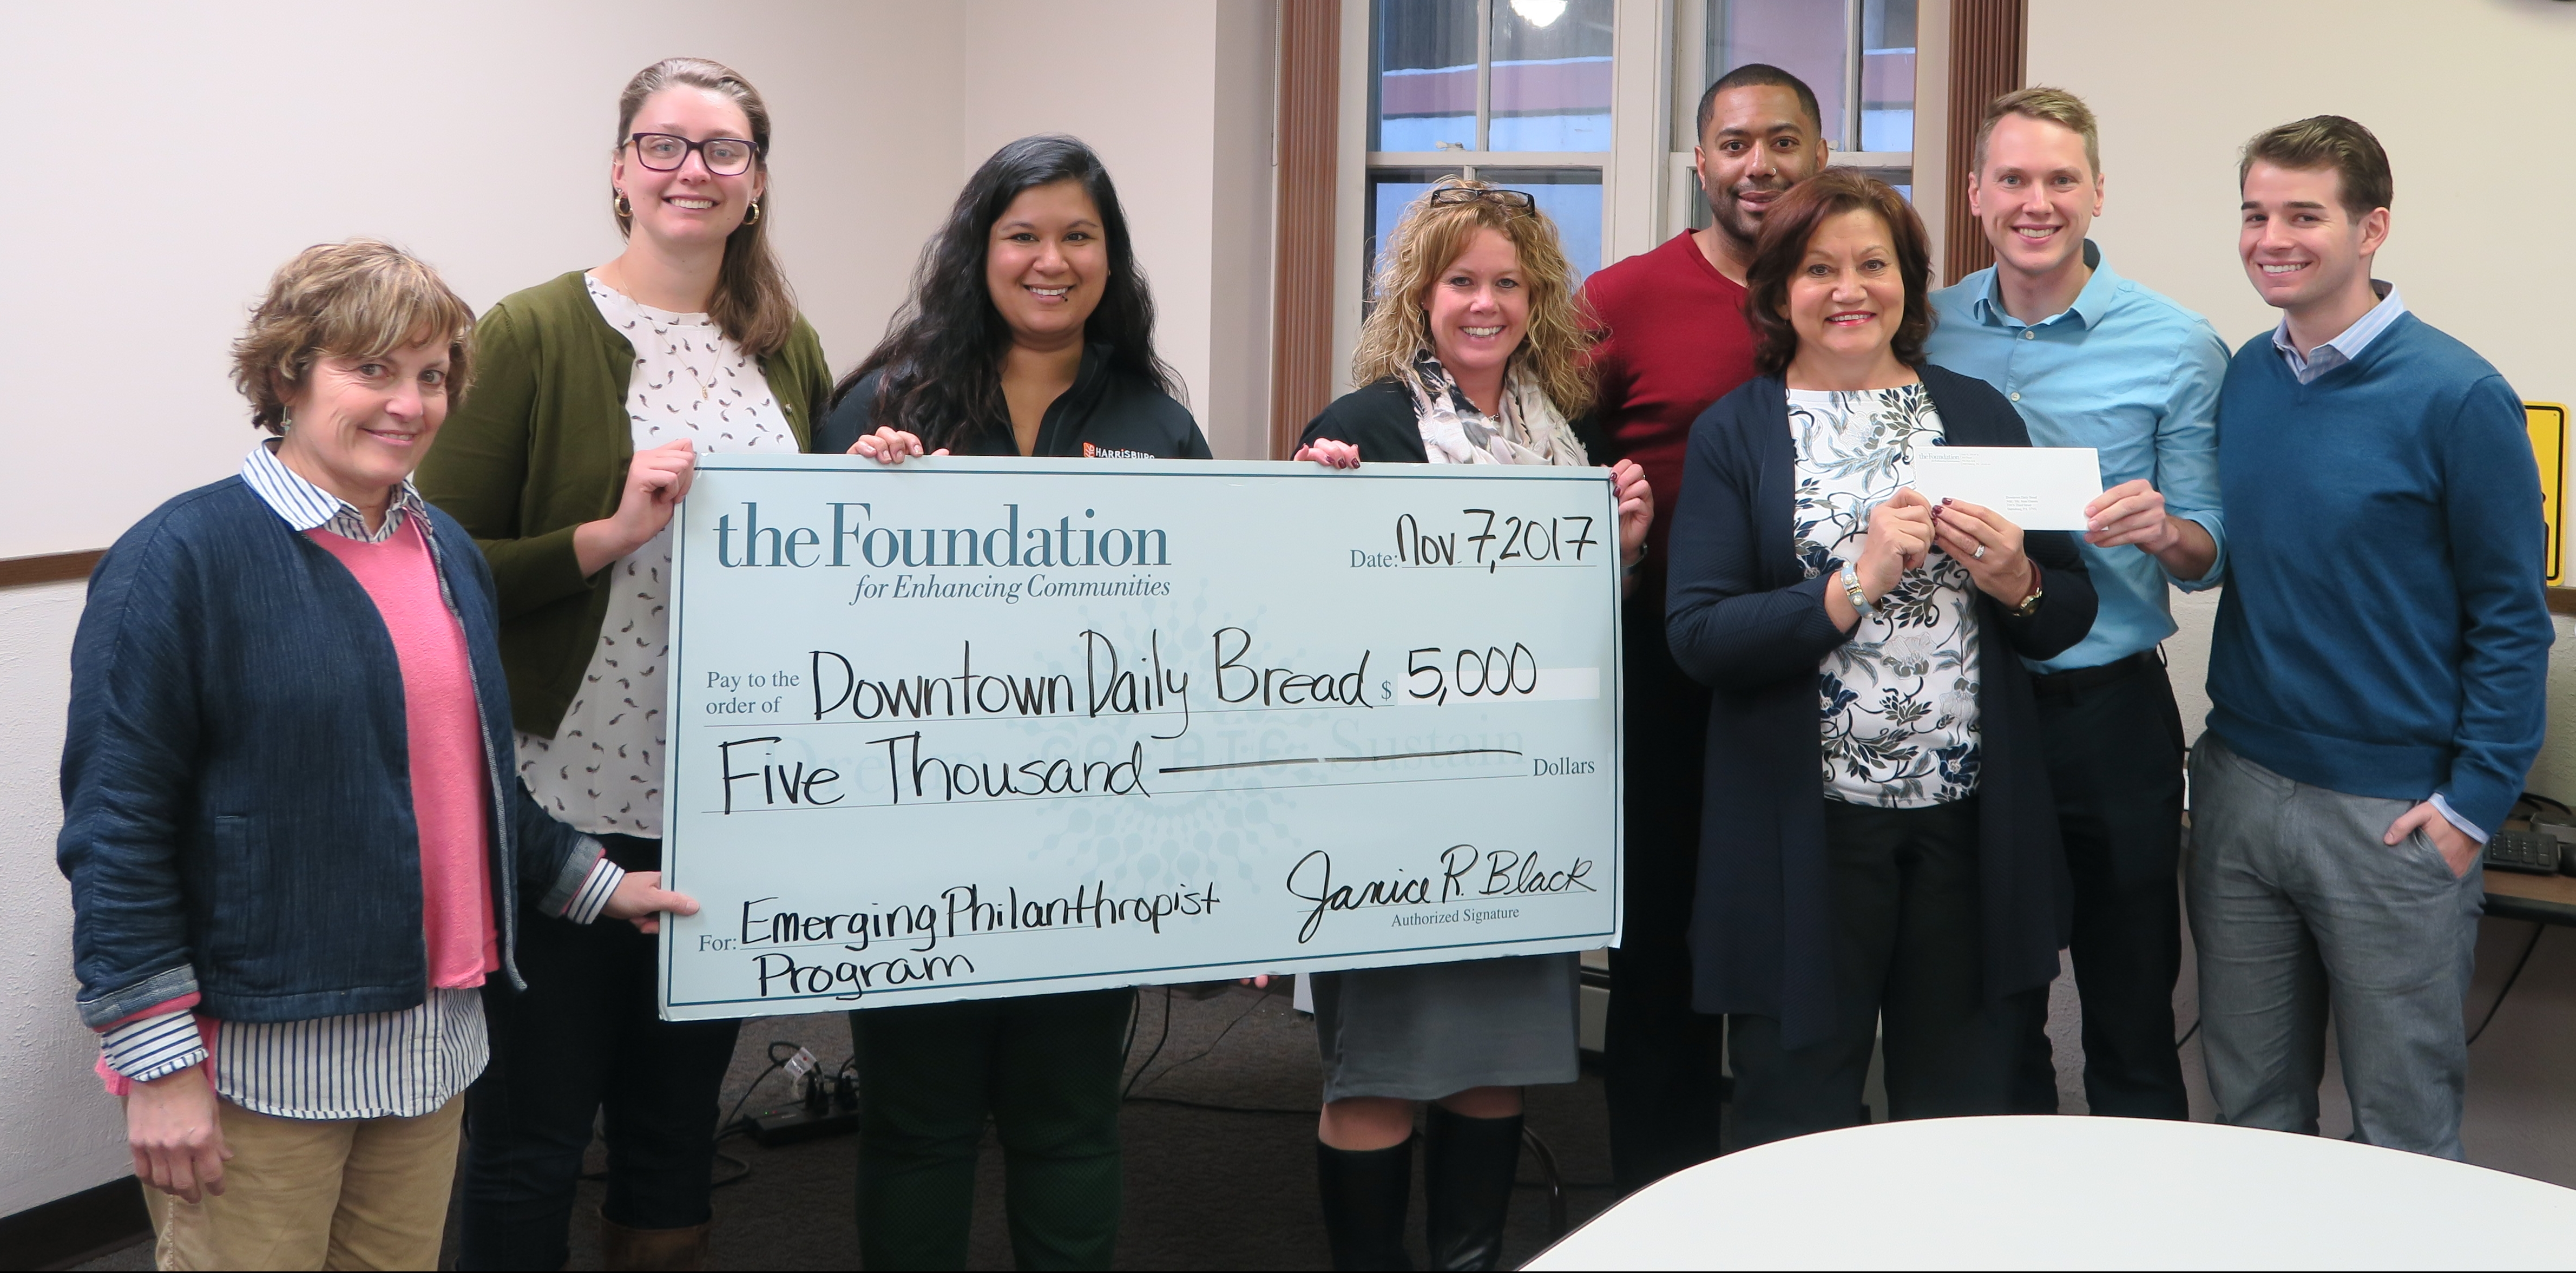 Emerging Philanthropist Program Awards $5,000 to Downtown Daily Bread